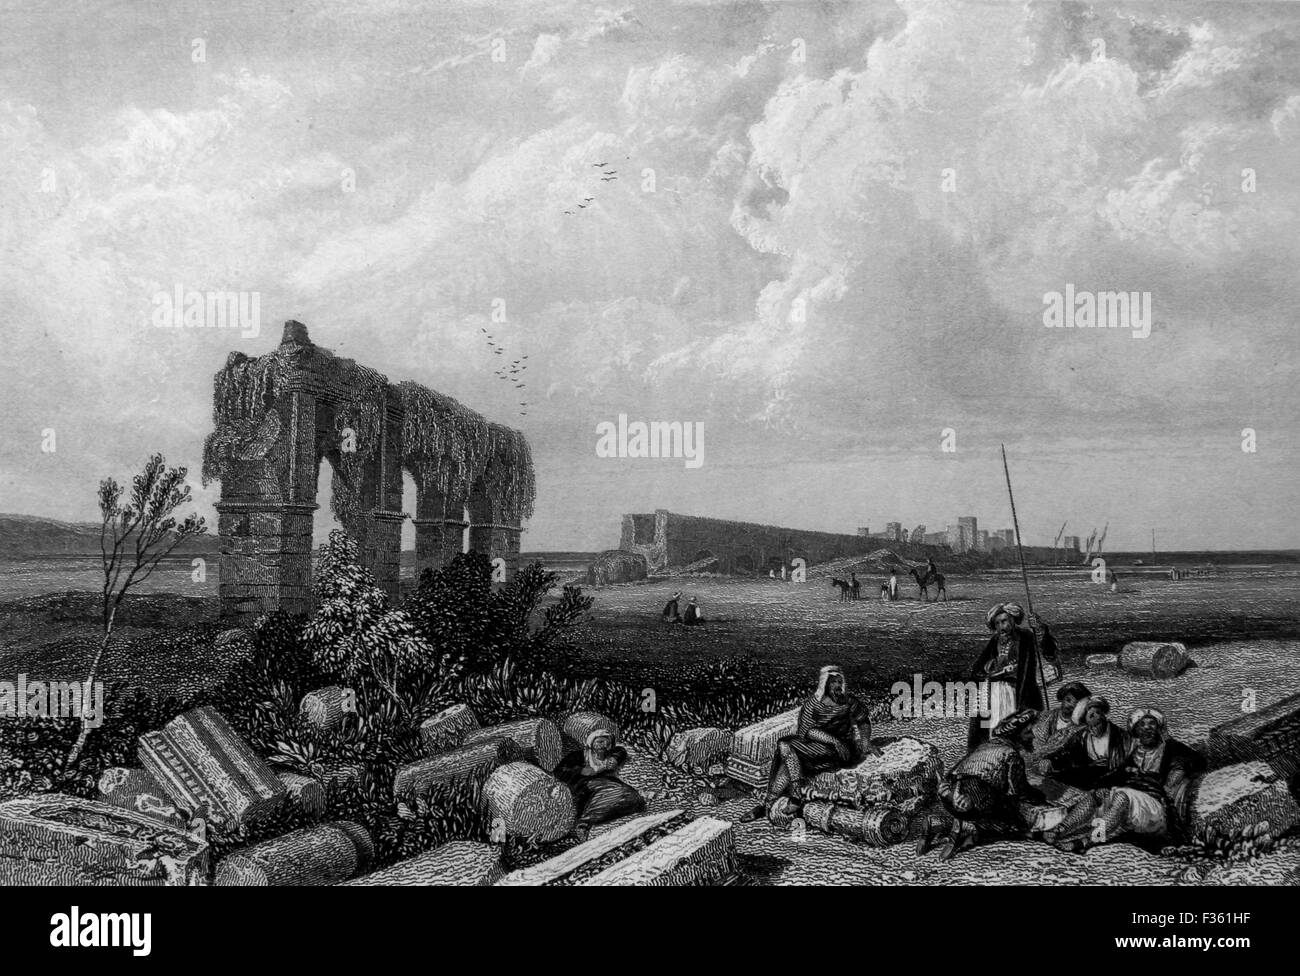 The Ruins of Tyre. Black and White Illustration from Landscapes of the Bible - Stock Image